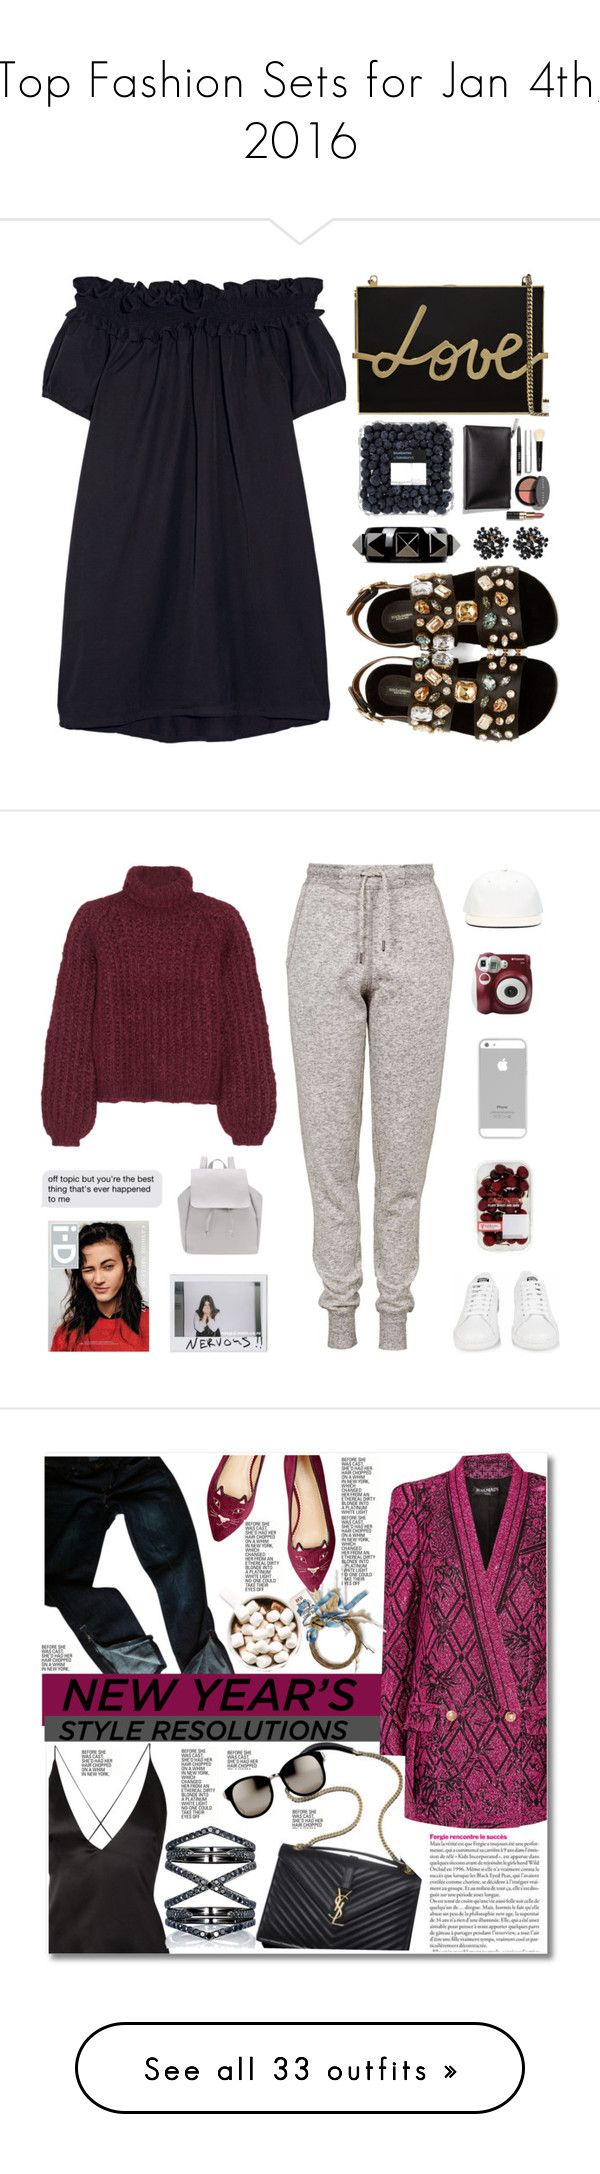 """Top Fashion Sets for Jan 4th, 2016"" by polyvore ❤ liked on Polyvore featuring Clu, Dolce"